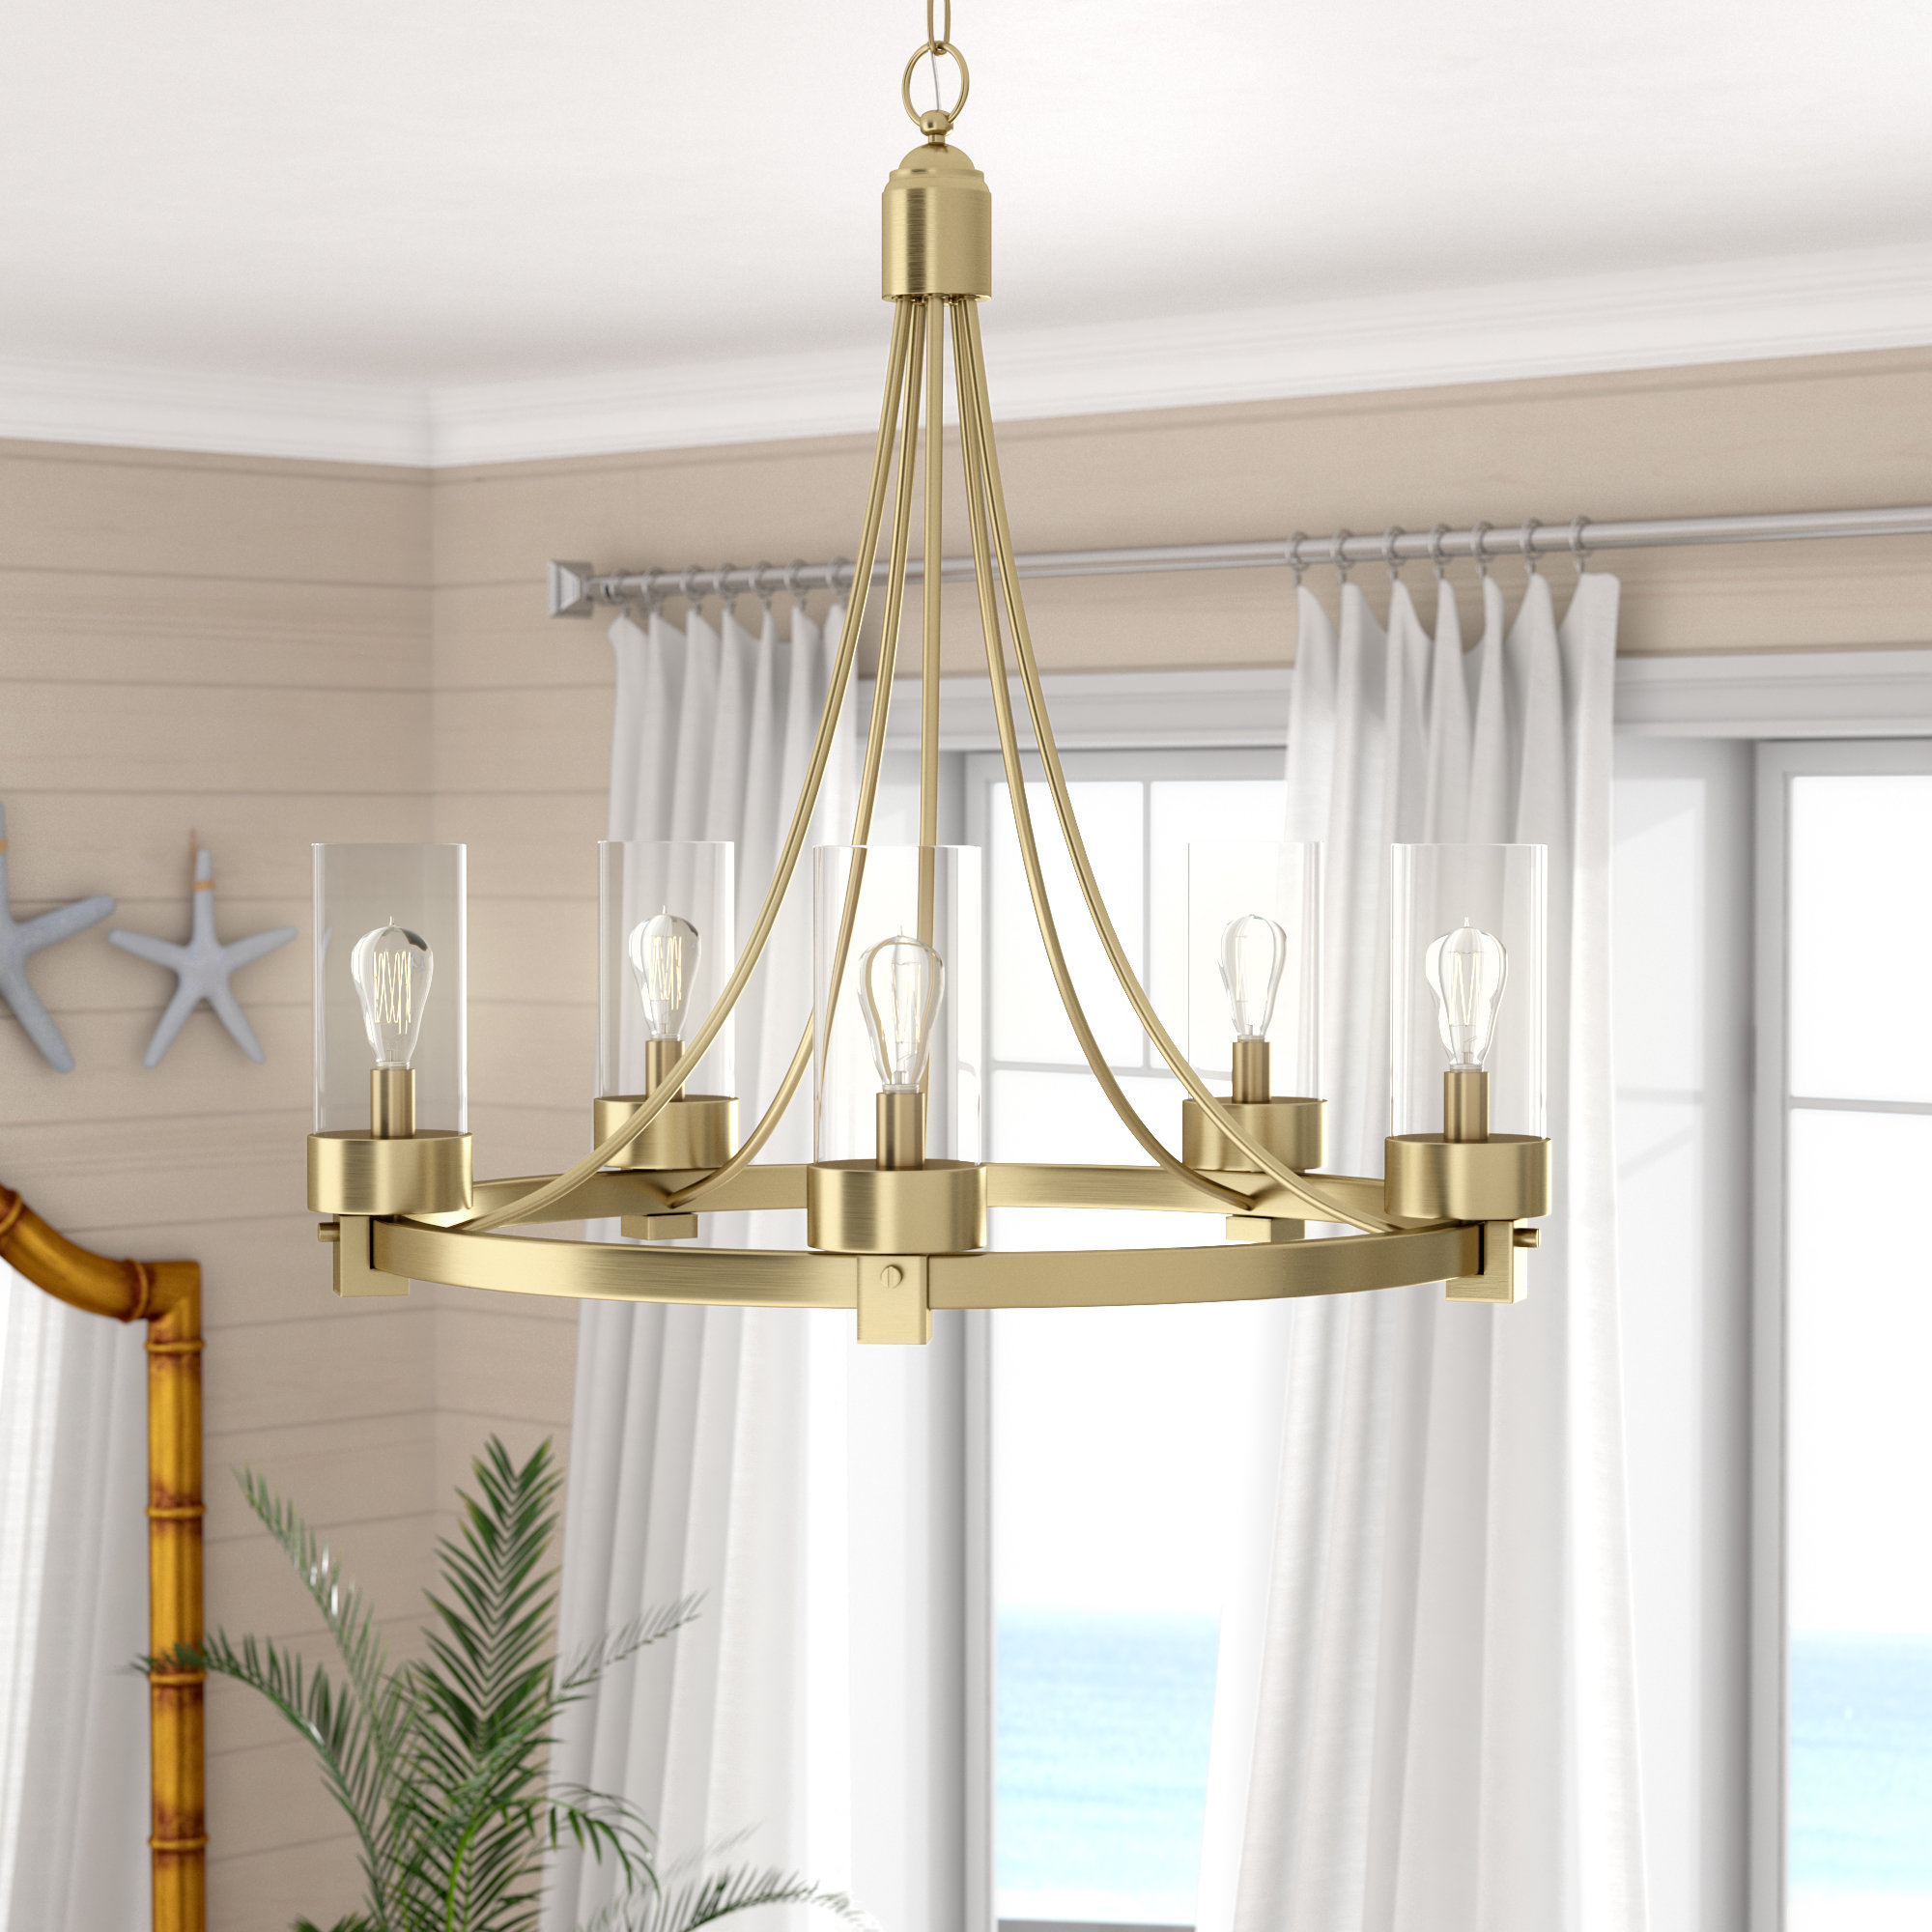 2020 Janette 5 Light Wagon Wheel Chandeliers Pertaining To Delshire 5 Light Wagon Wheel Chandelier (Gallery 7 of 20)